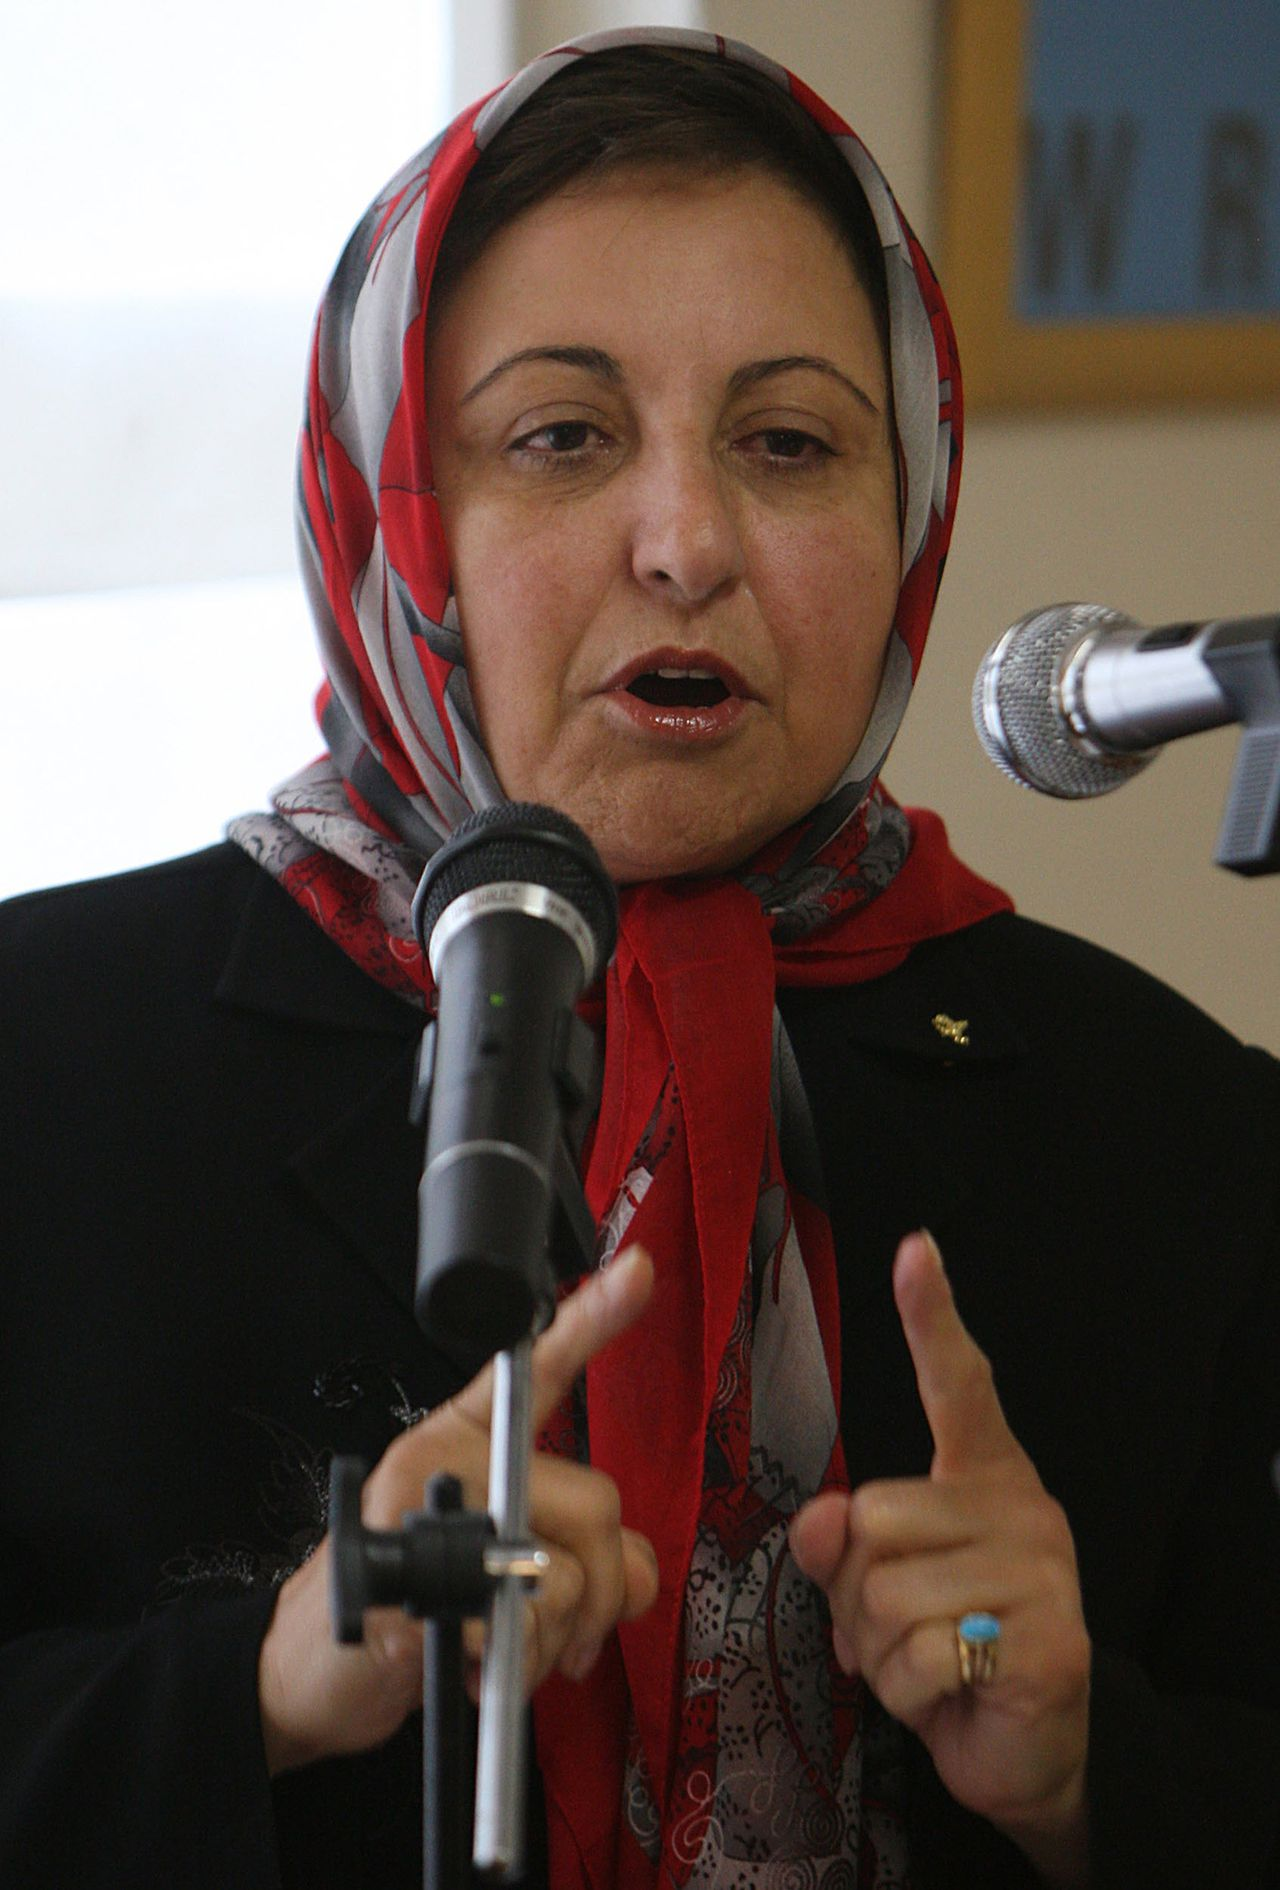 """Shirin Ebadi. (Foto AFP) (FILES) In a file picture dated June 30, 2008, Iranian Nobel peace laureate and women rights activist Shirin Ebadi speaks during a press conference in Tehran. Iranian police shut down the office of a human rights group headed by Ebadi on December 21, 2008, the deputy head of the Human Rights Defenders Centre, Narges Mohammadi, said. She said dozens of policemen had gathered in front of the group's office in northwest Tehran and that the officials had not """"shown a judicial warrant but only provided the number of a warrant."""" AFP PHOTO/ATTA KENARE"""